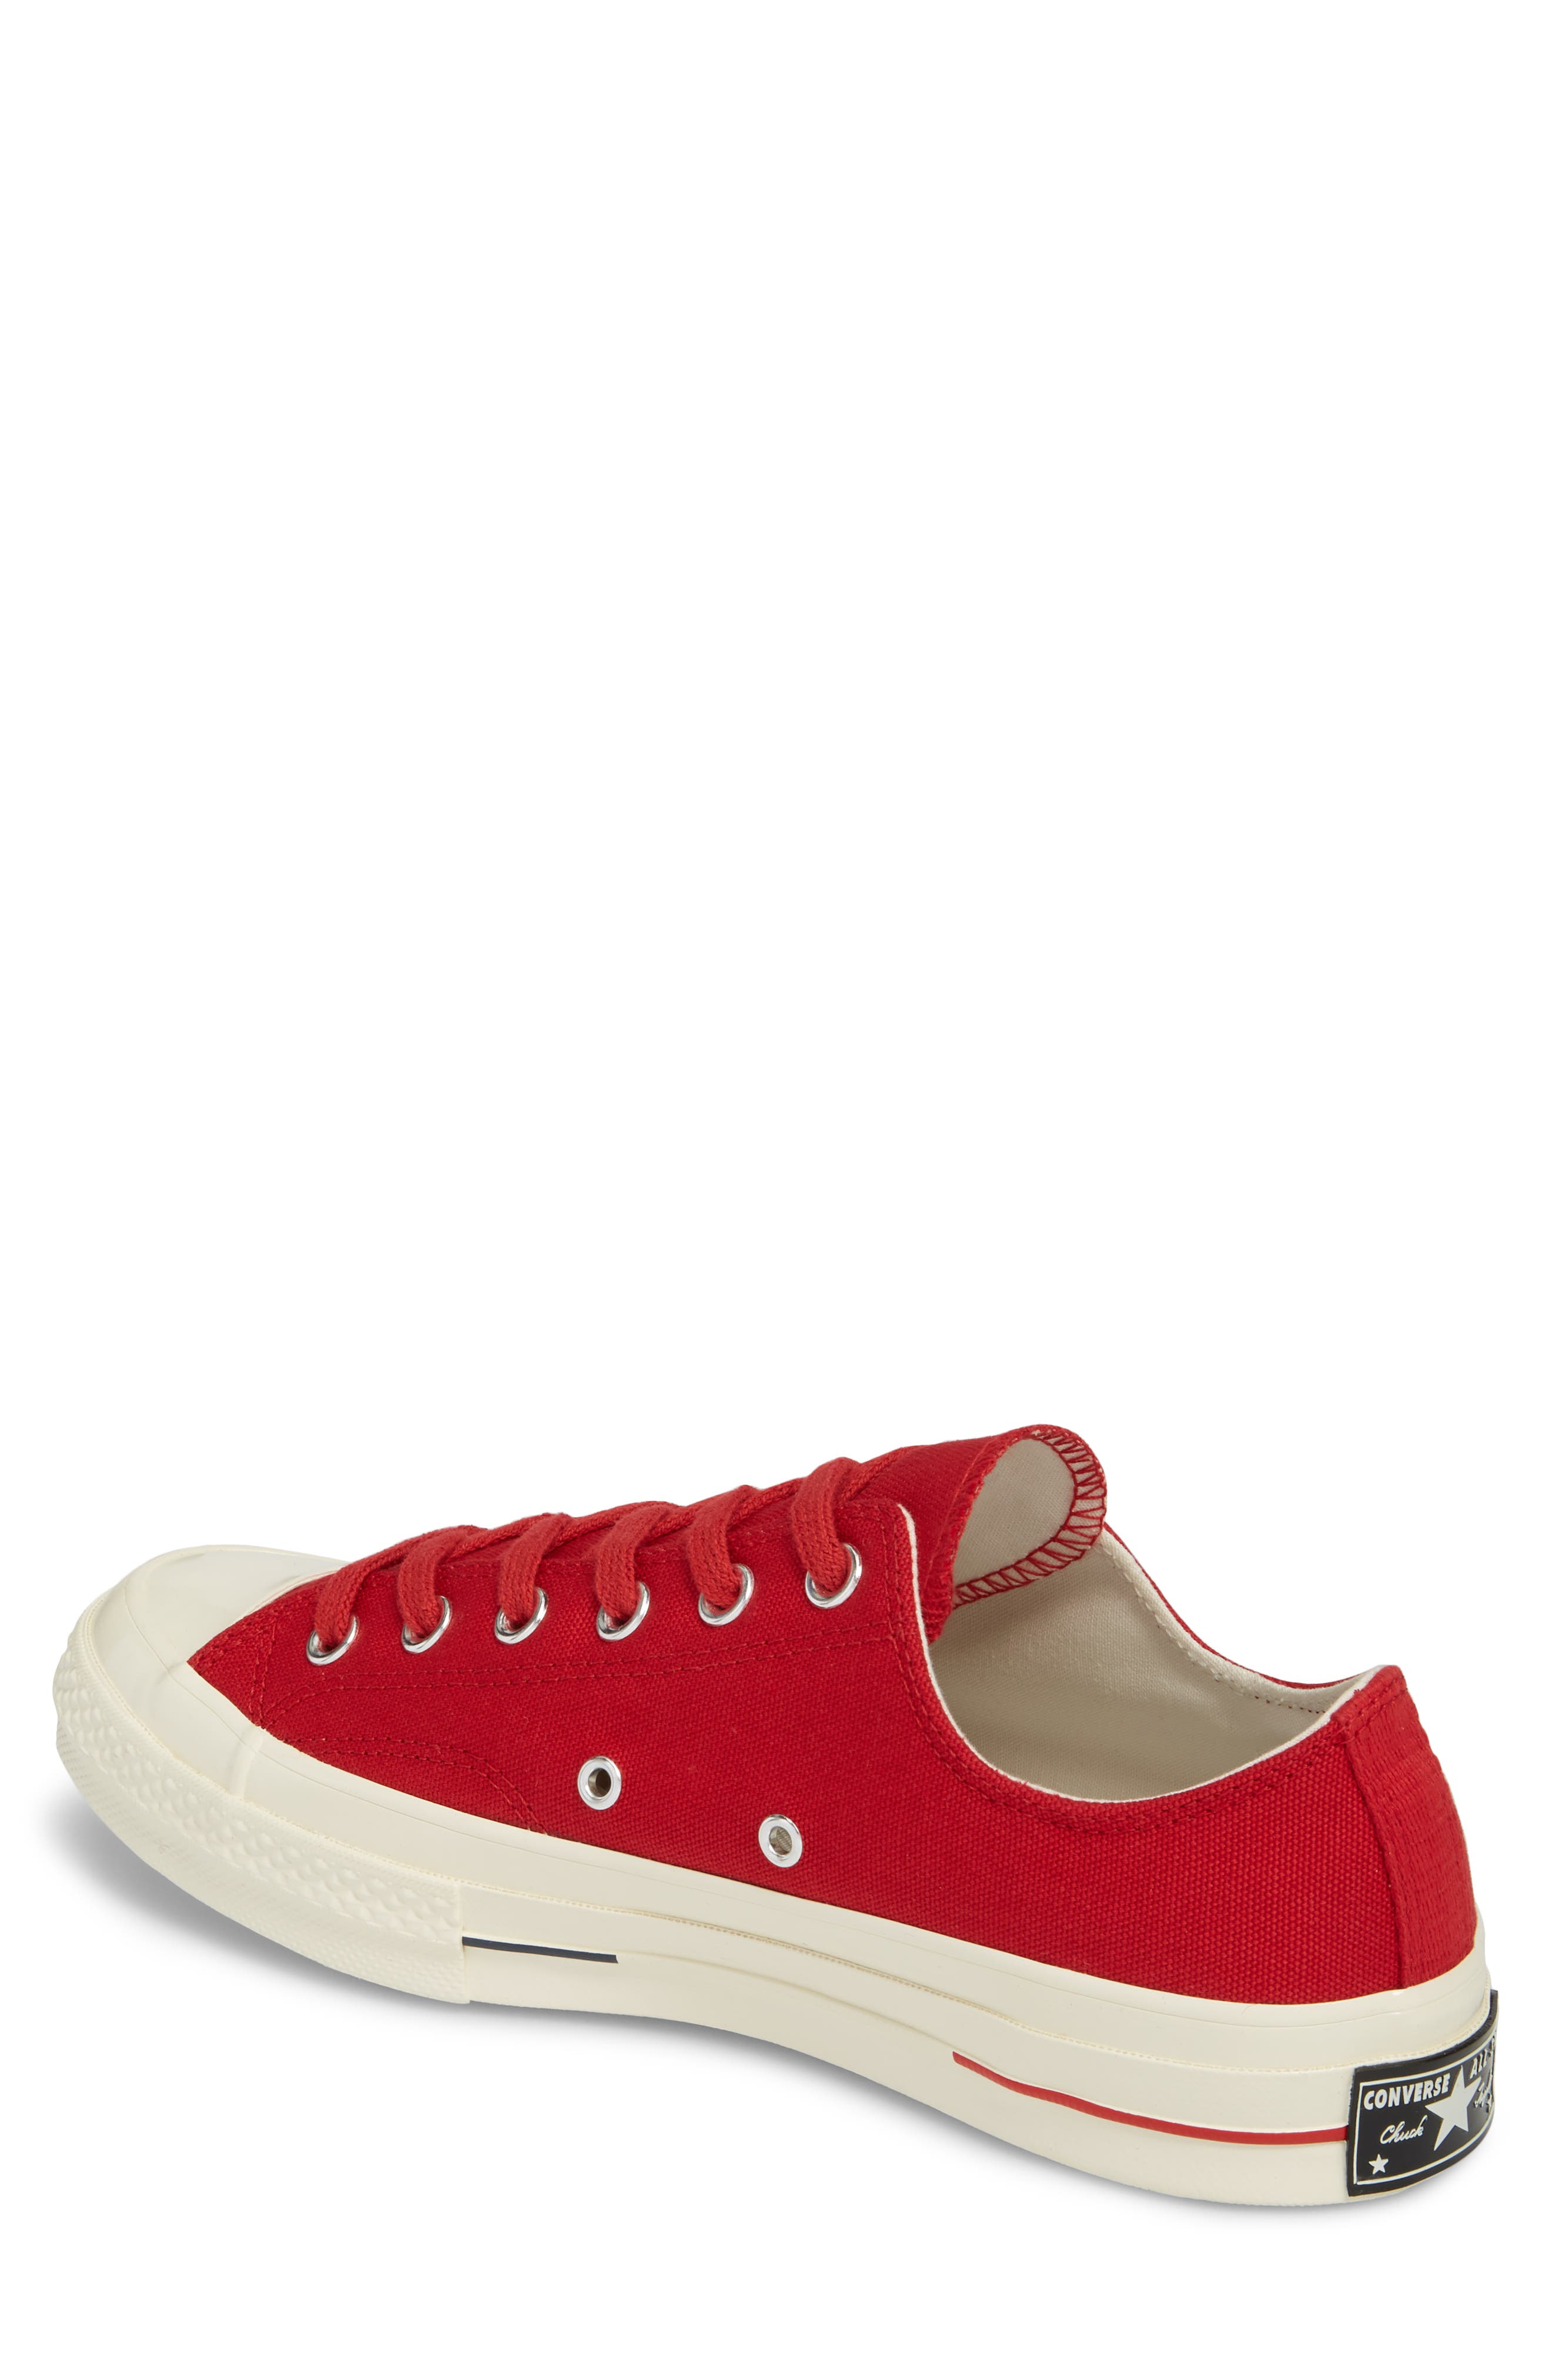 Chuck Taylor<sup>®</sup> All Star<sup>®</sup> '70s Heritage Low Top Sneaker,                             Alternate thumbnail 2, color,                             600